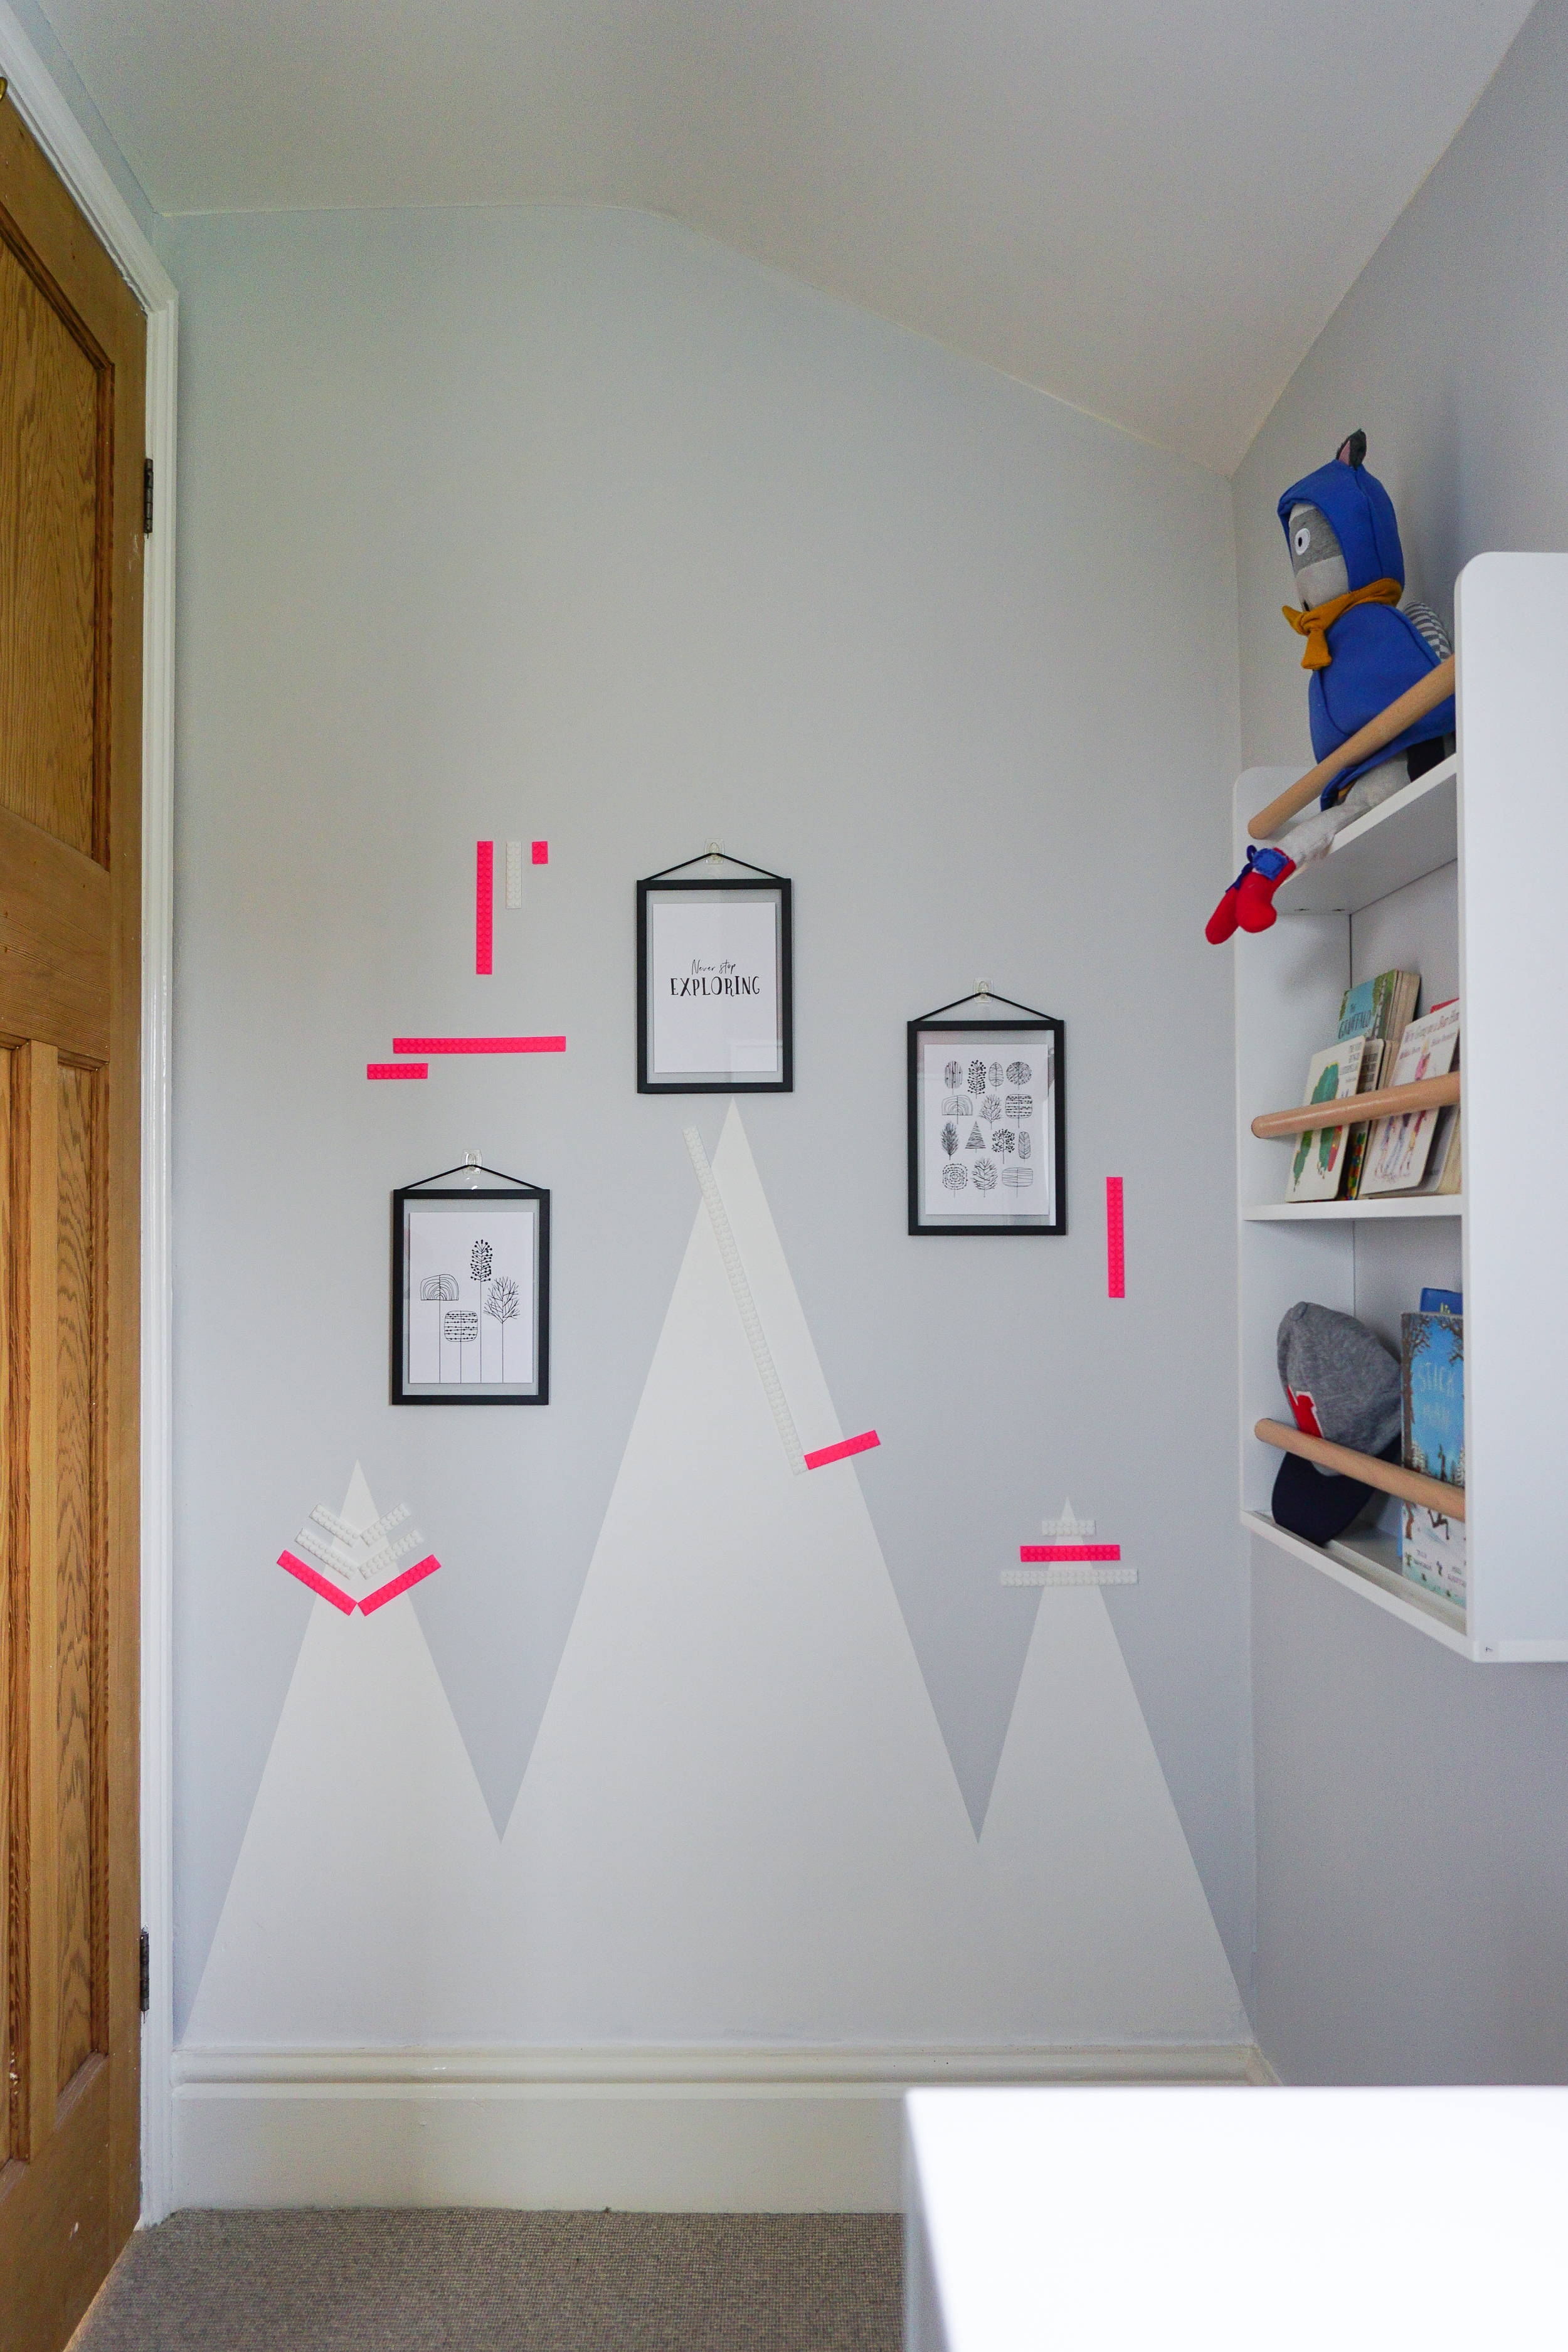 A Children's 'Never Stop Exploring' Wall